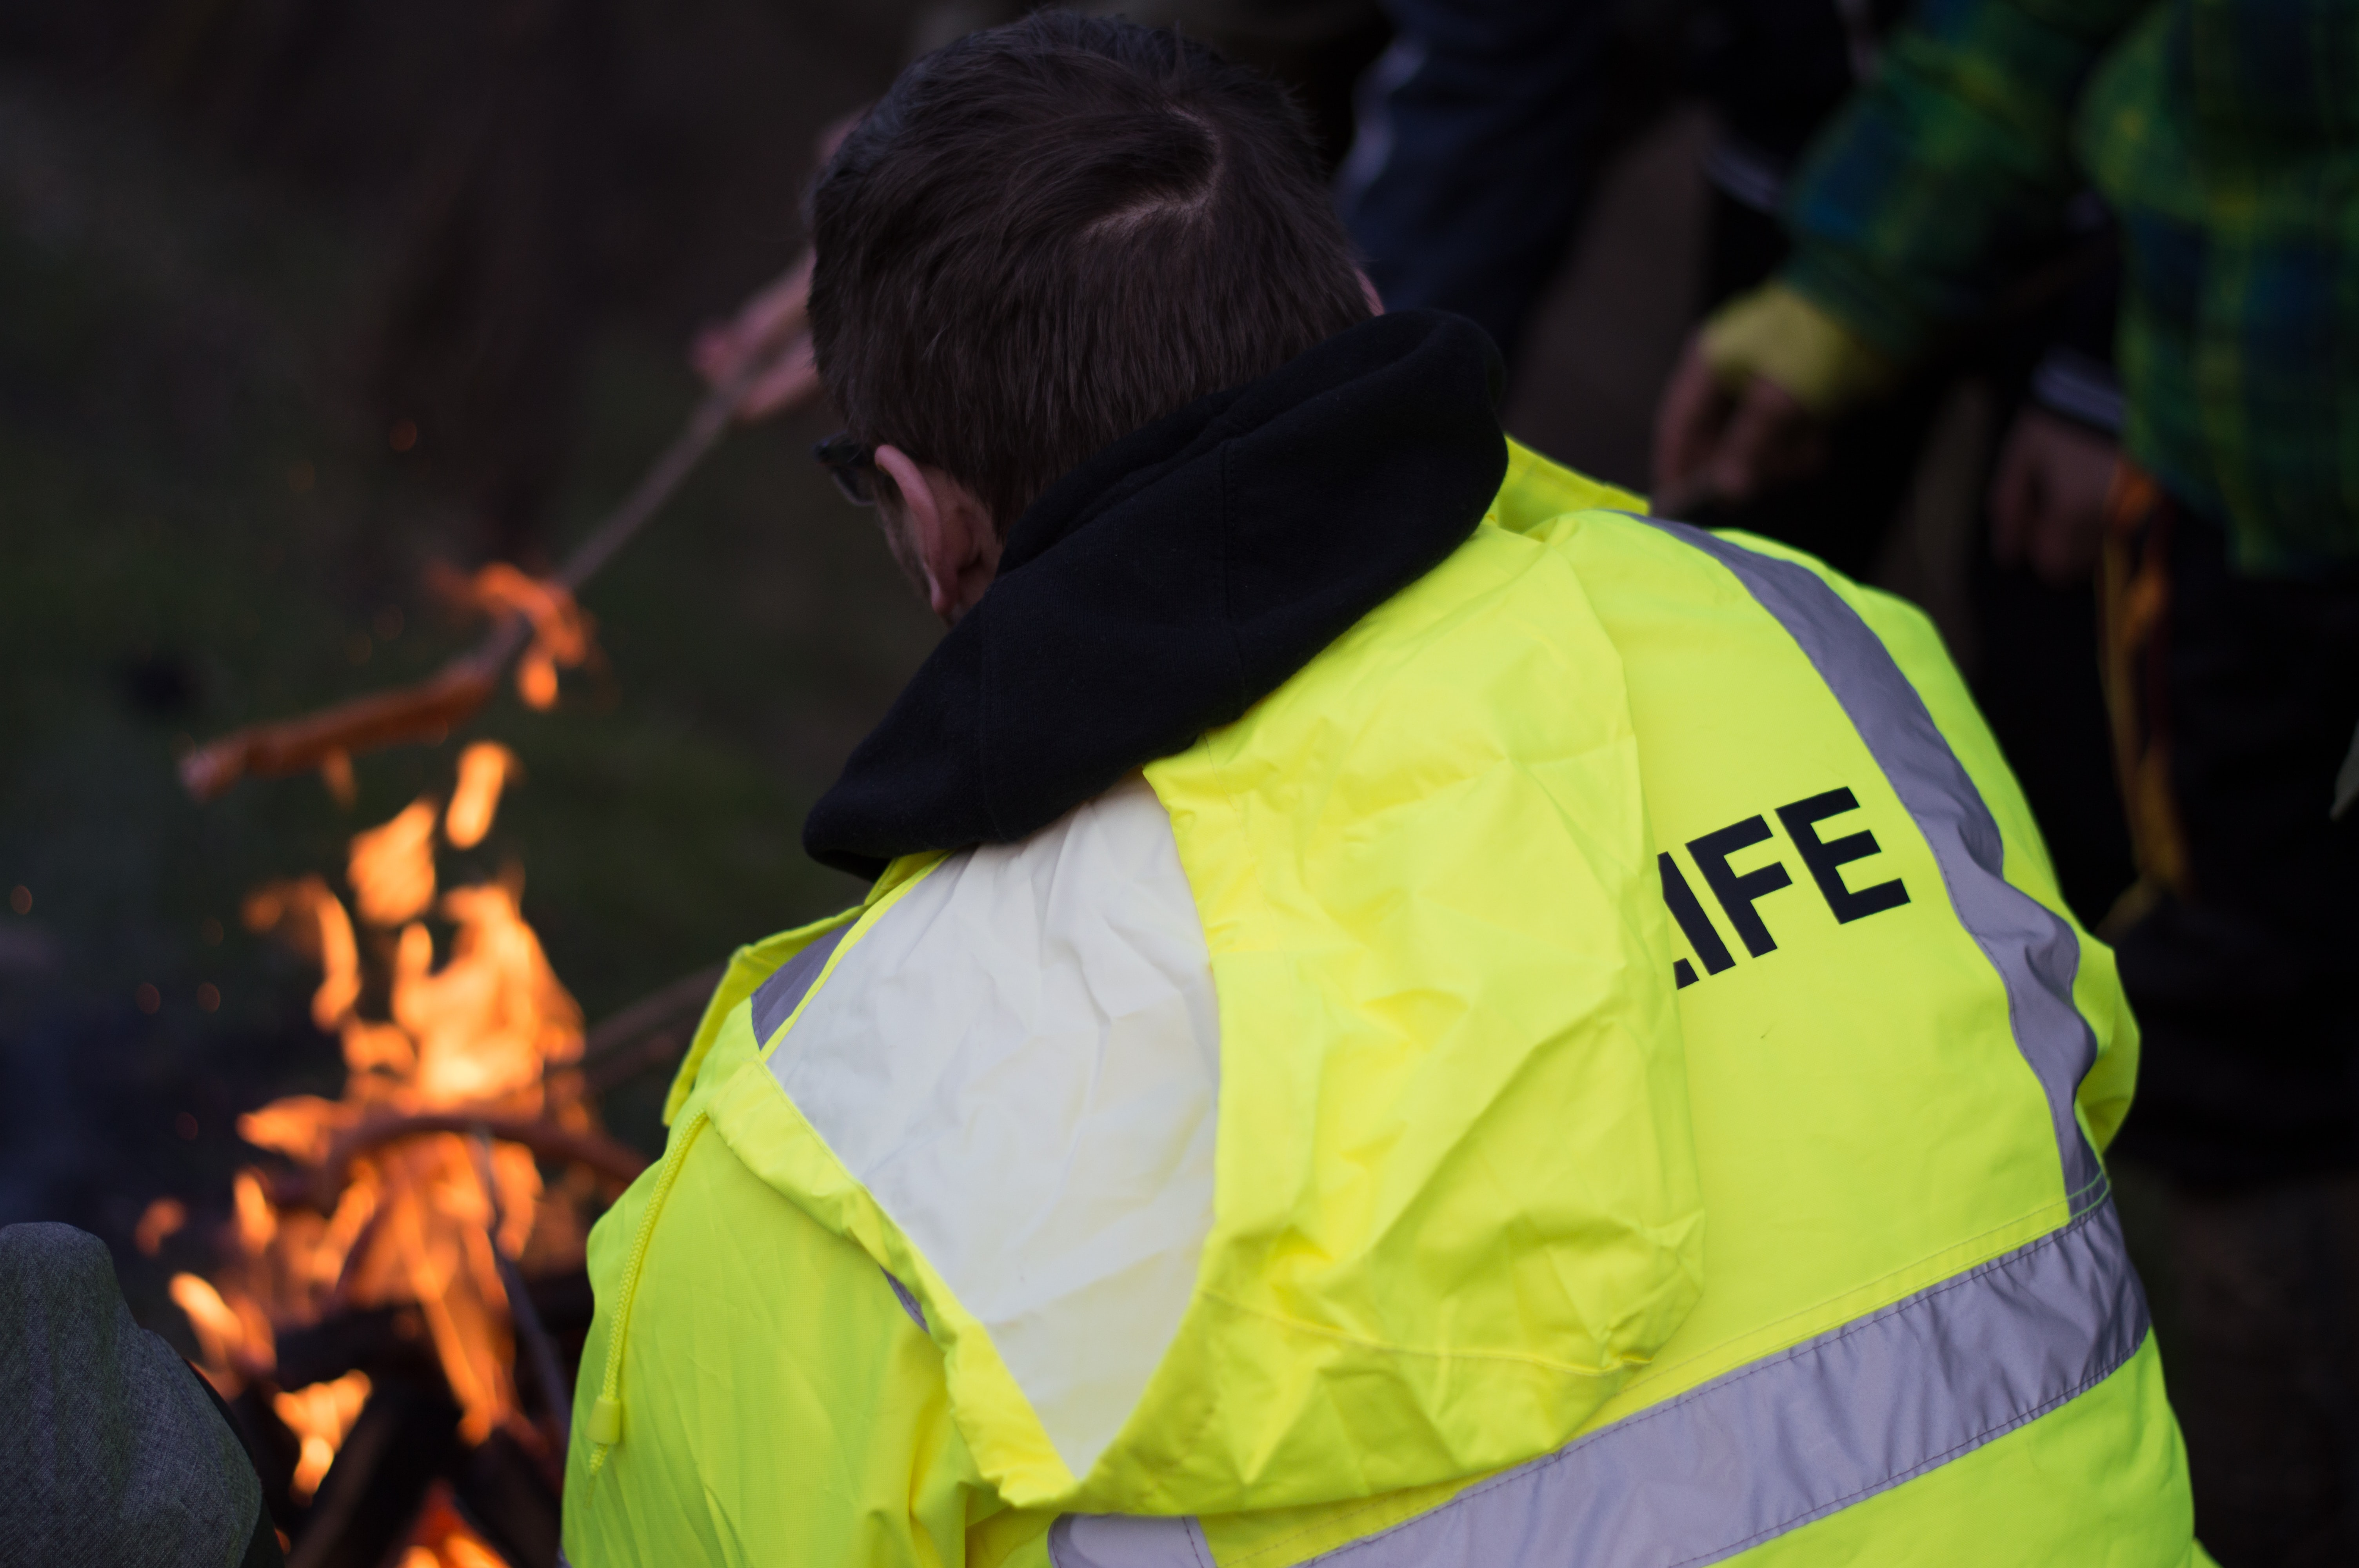 person wearing yellow and gray high visibility vest